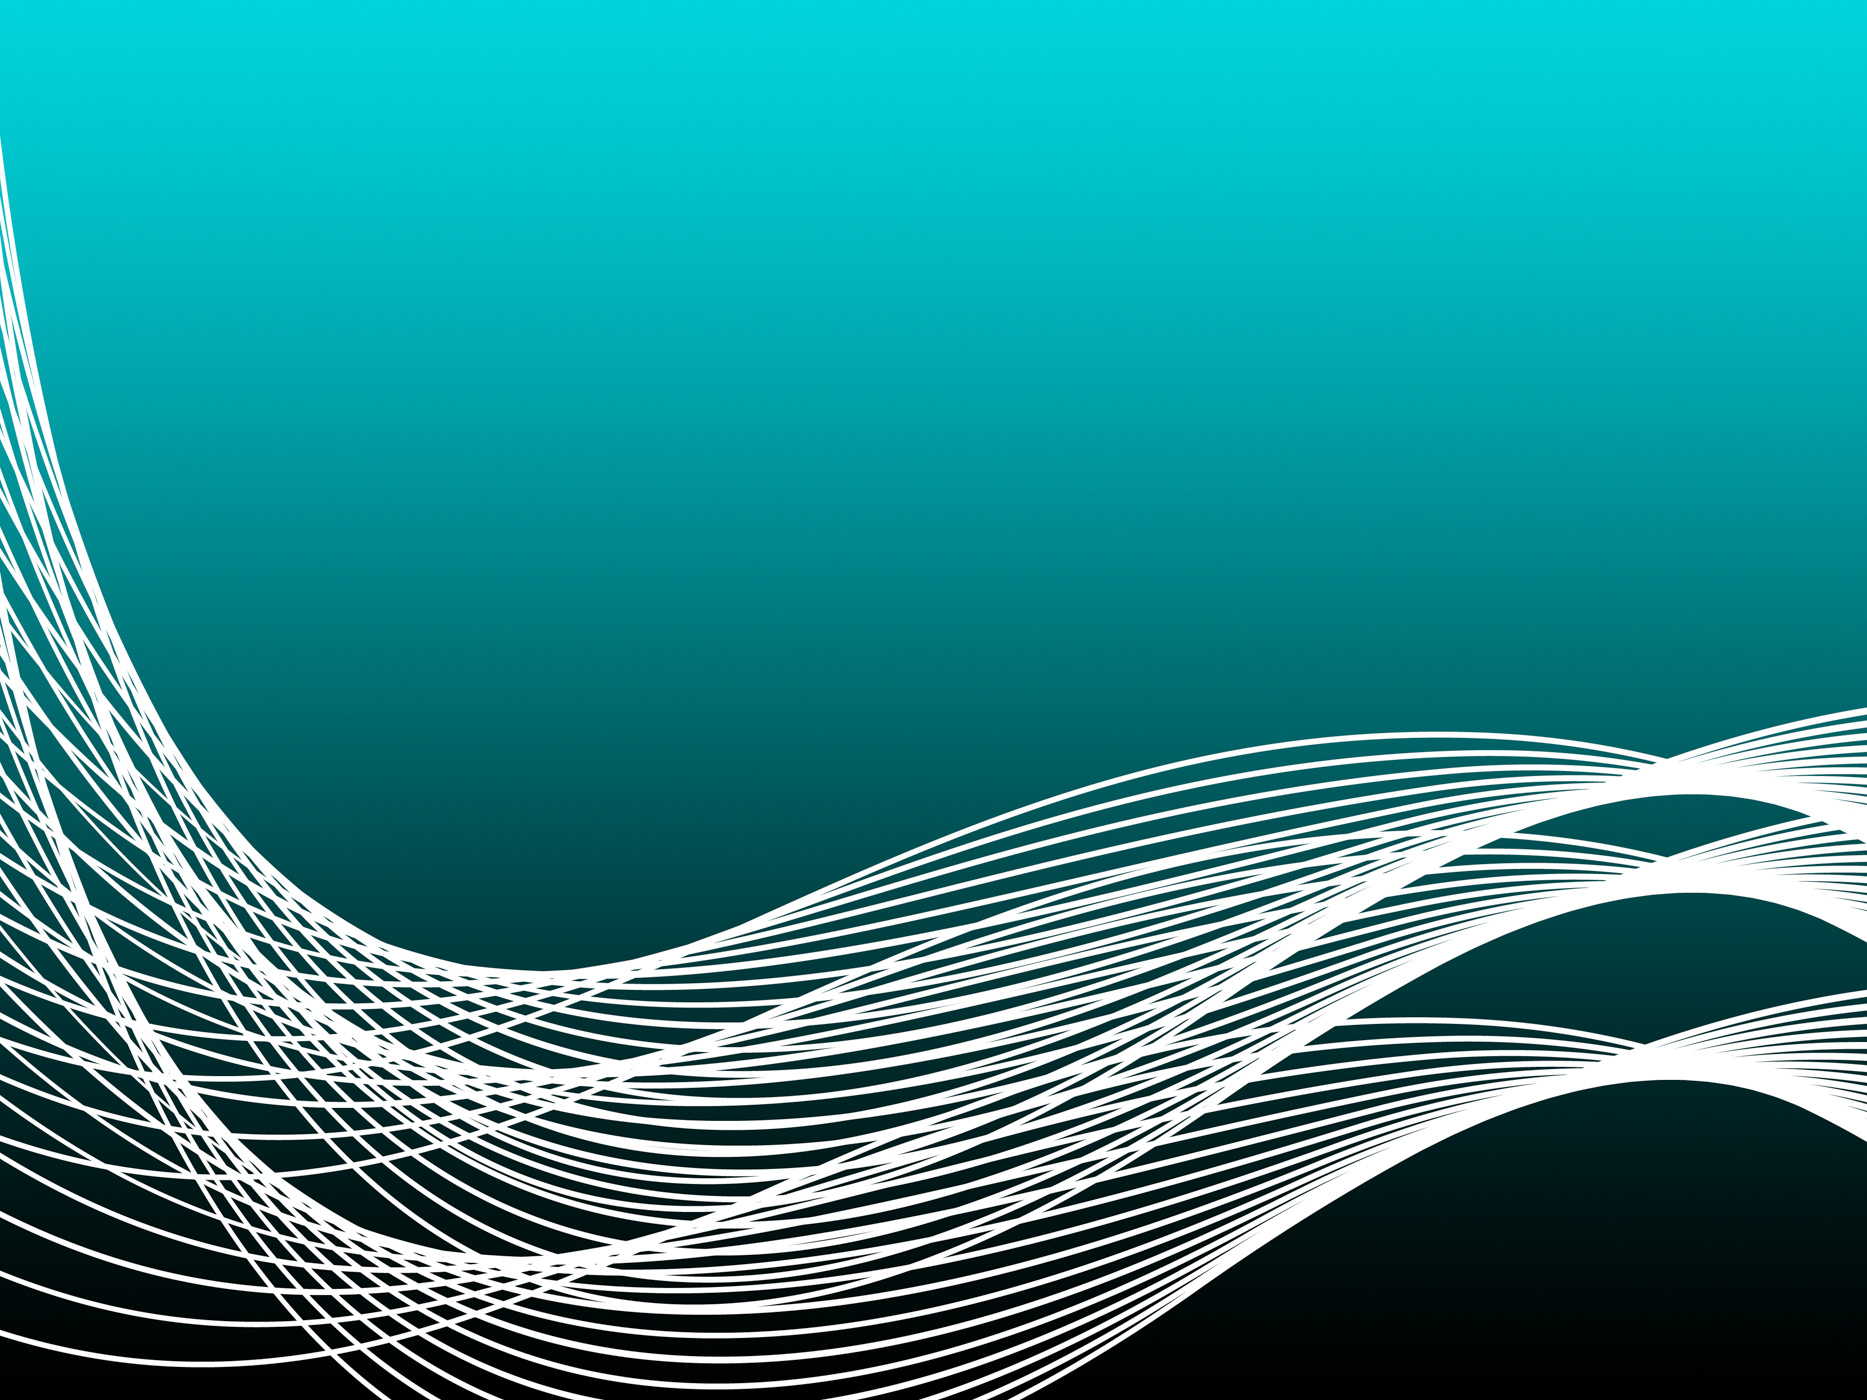 Turquoise curvy background shows graphic design or modern art photo